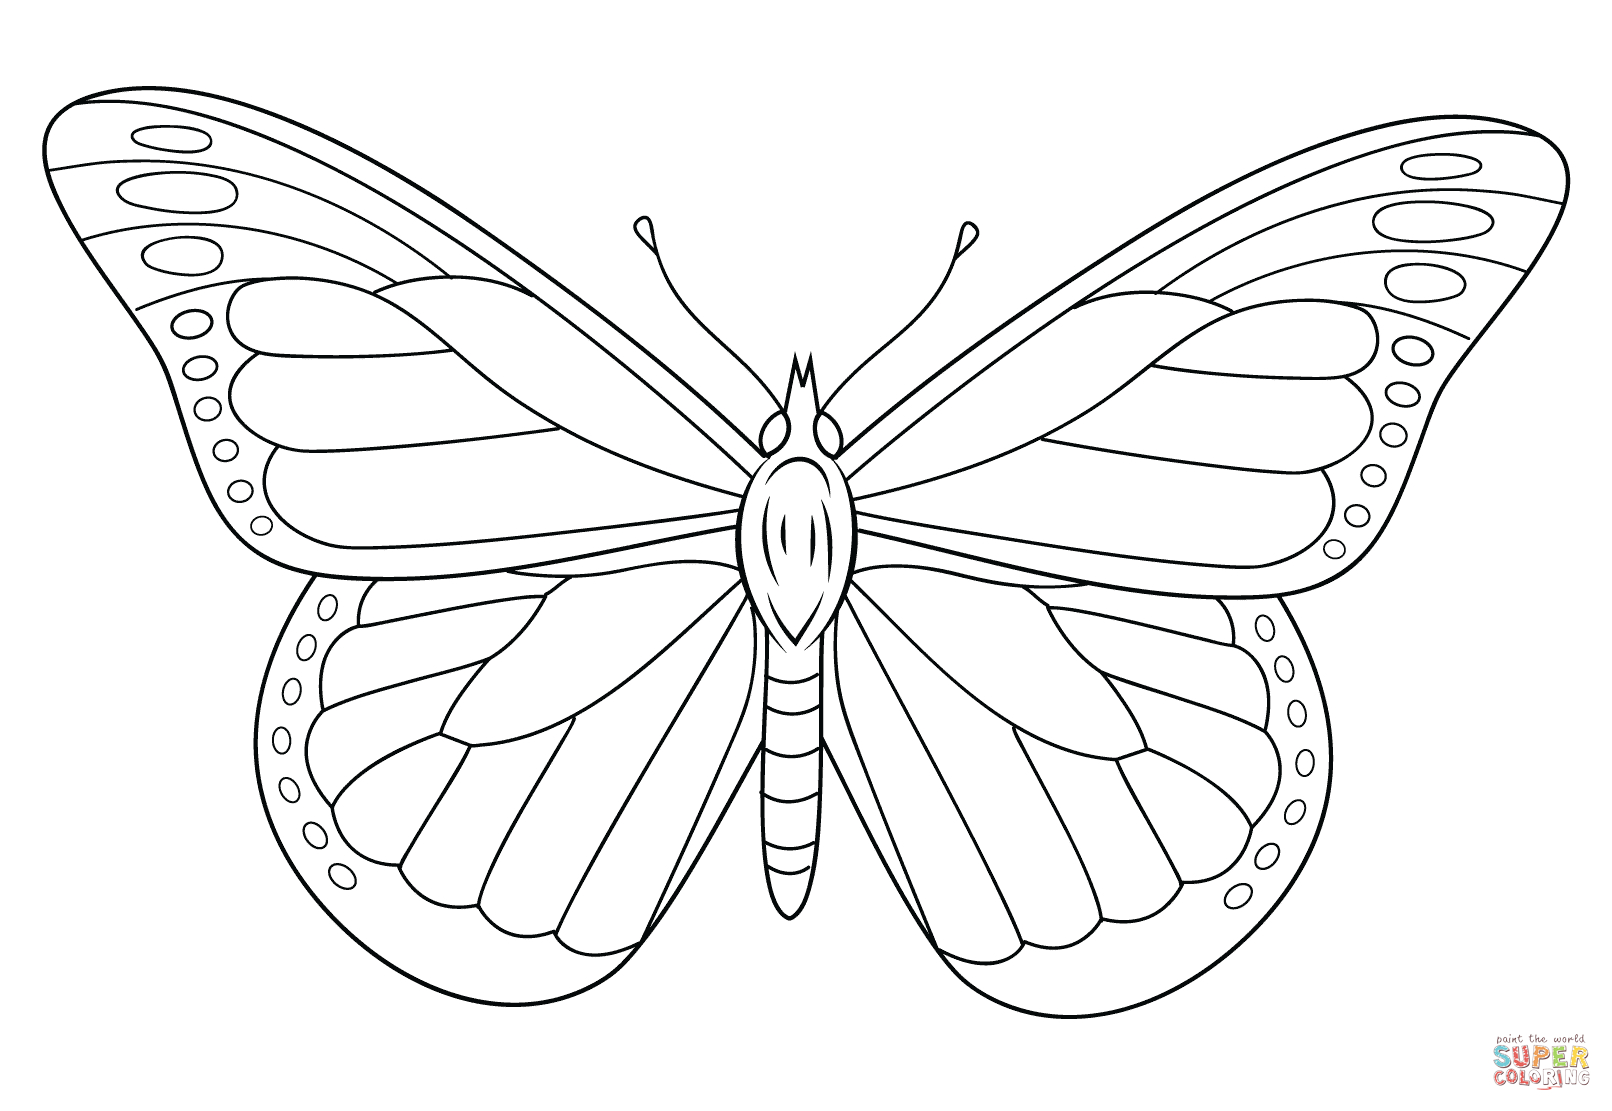 Monarch Butterfly Coloring Page | Free Printable Coloring Pages - Free Printable Butterfly Pictures